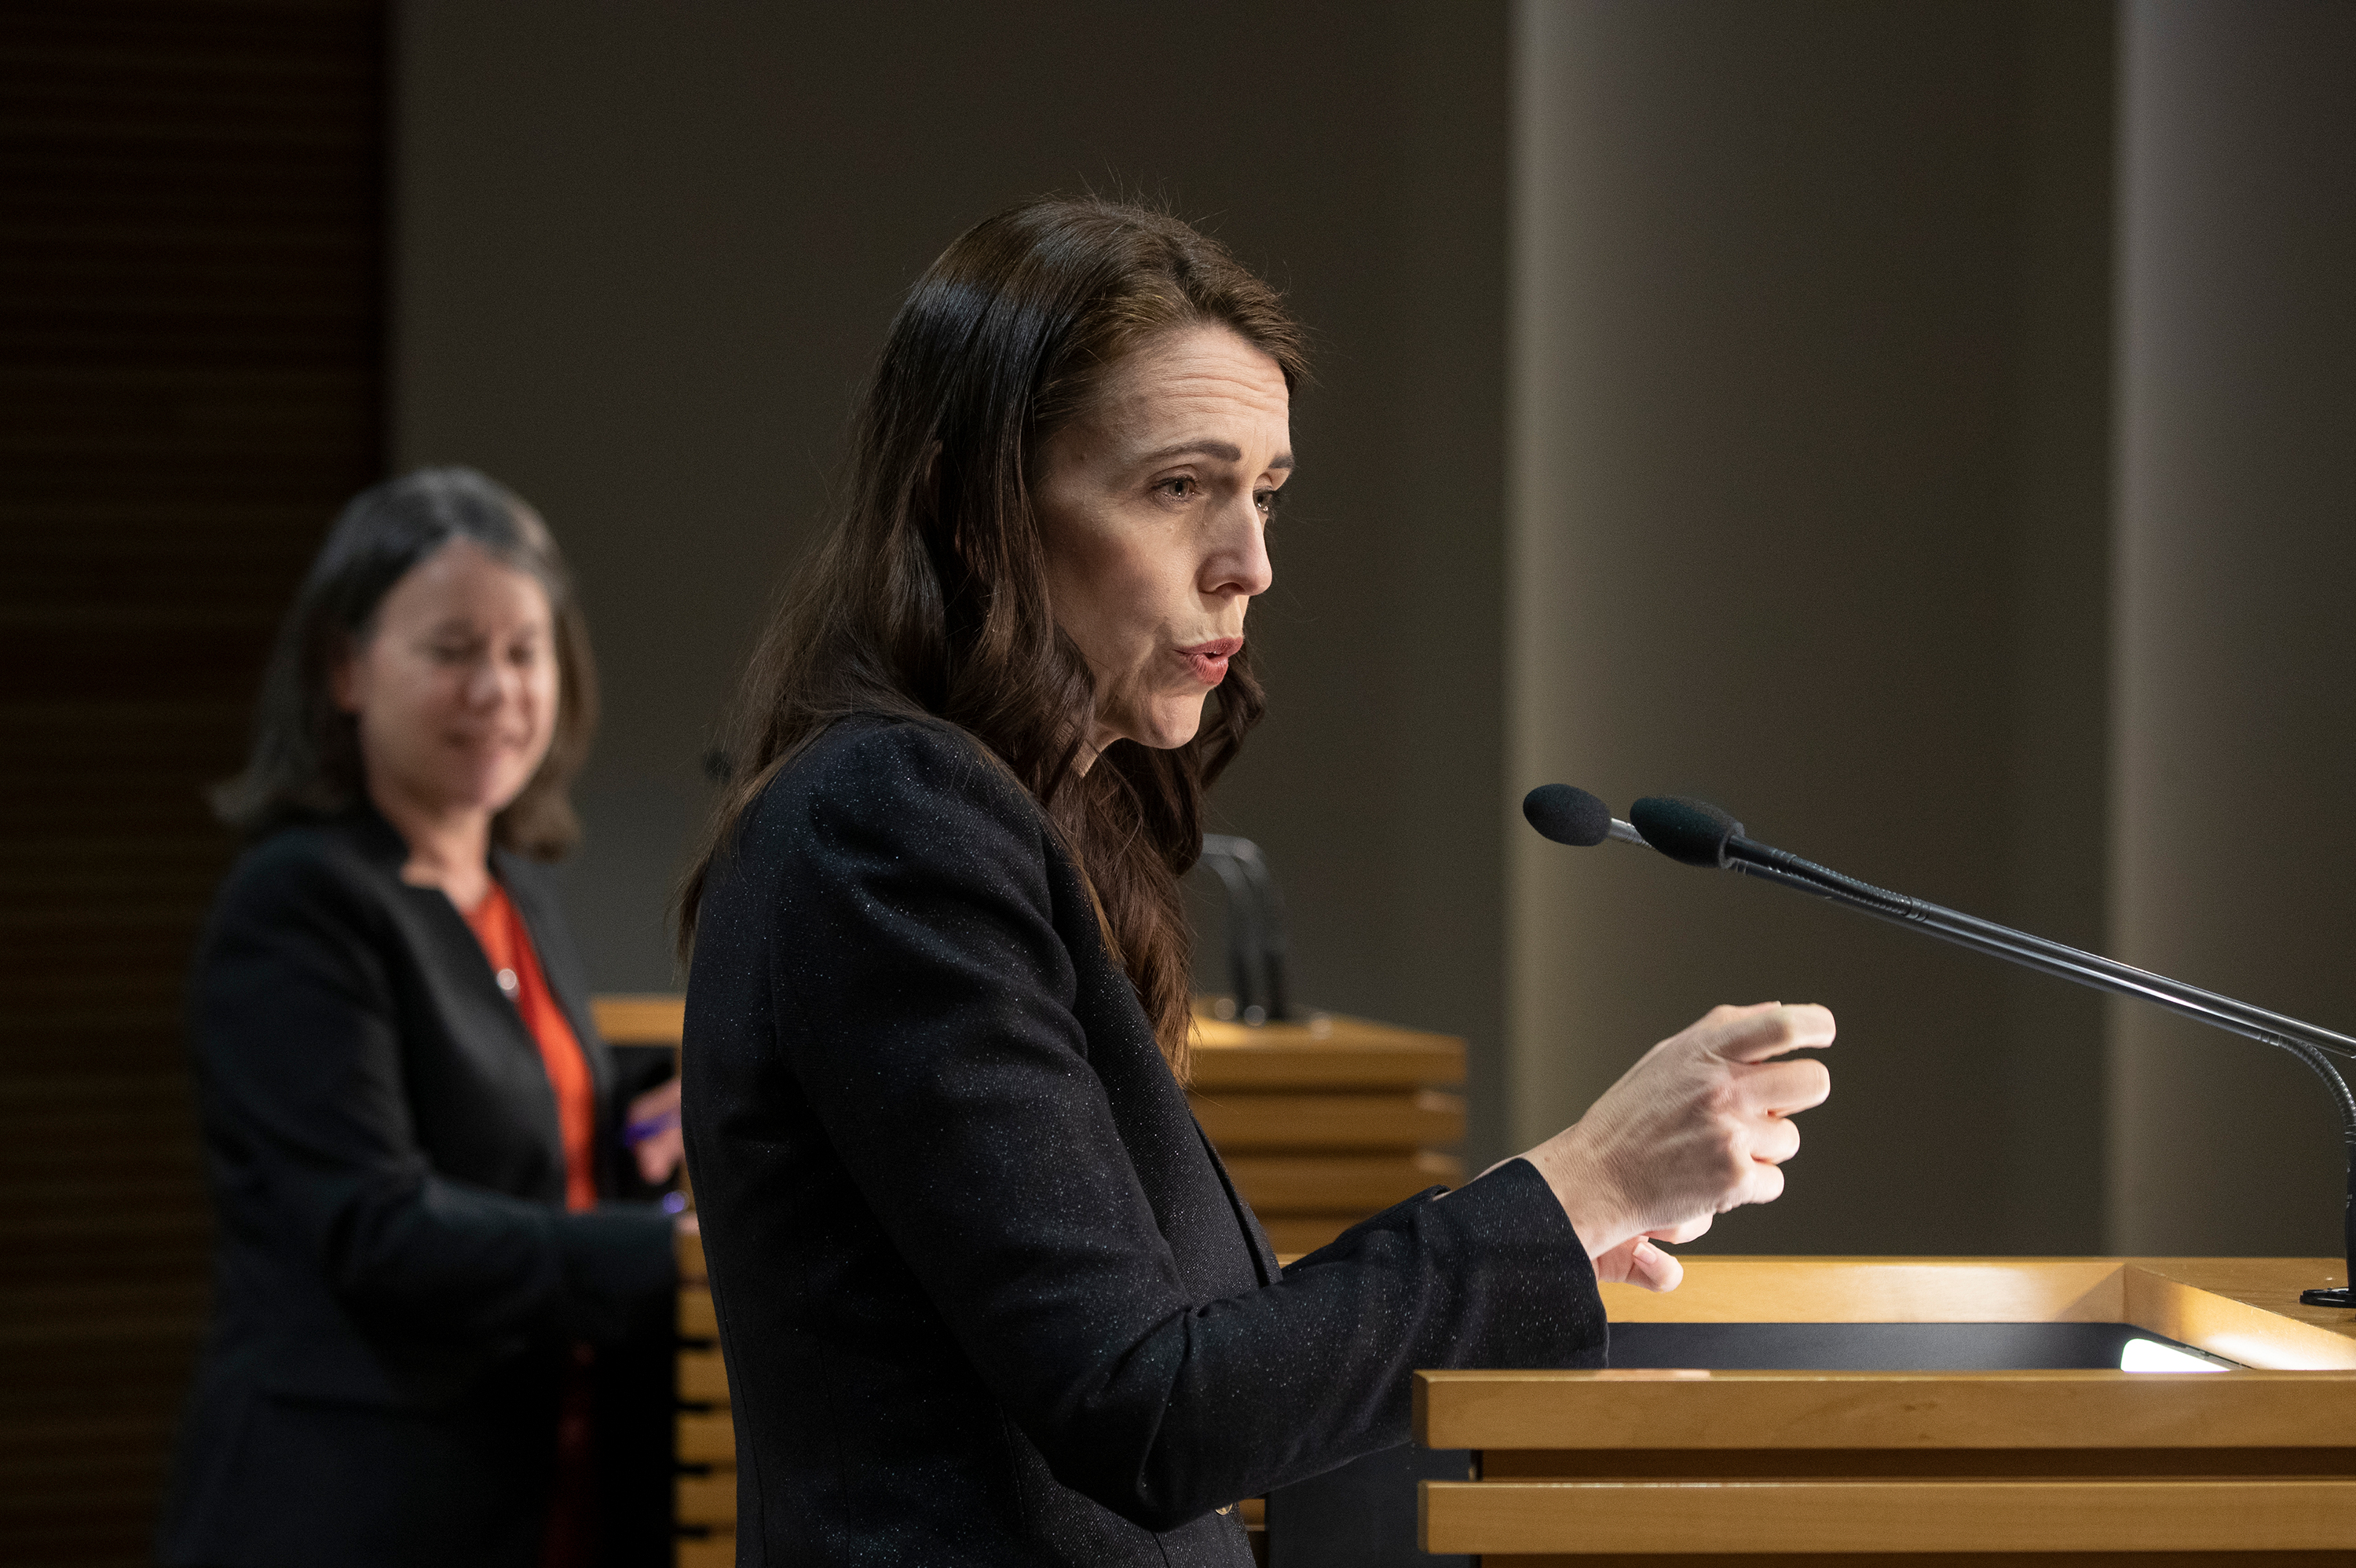 New Zealand Prime Minister Jacinda Ardern speaks during a press conference on Thursday, August 26, in Wellington, New Zealand.